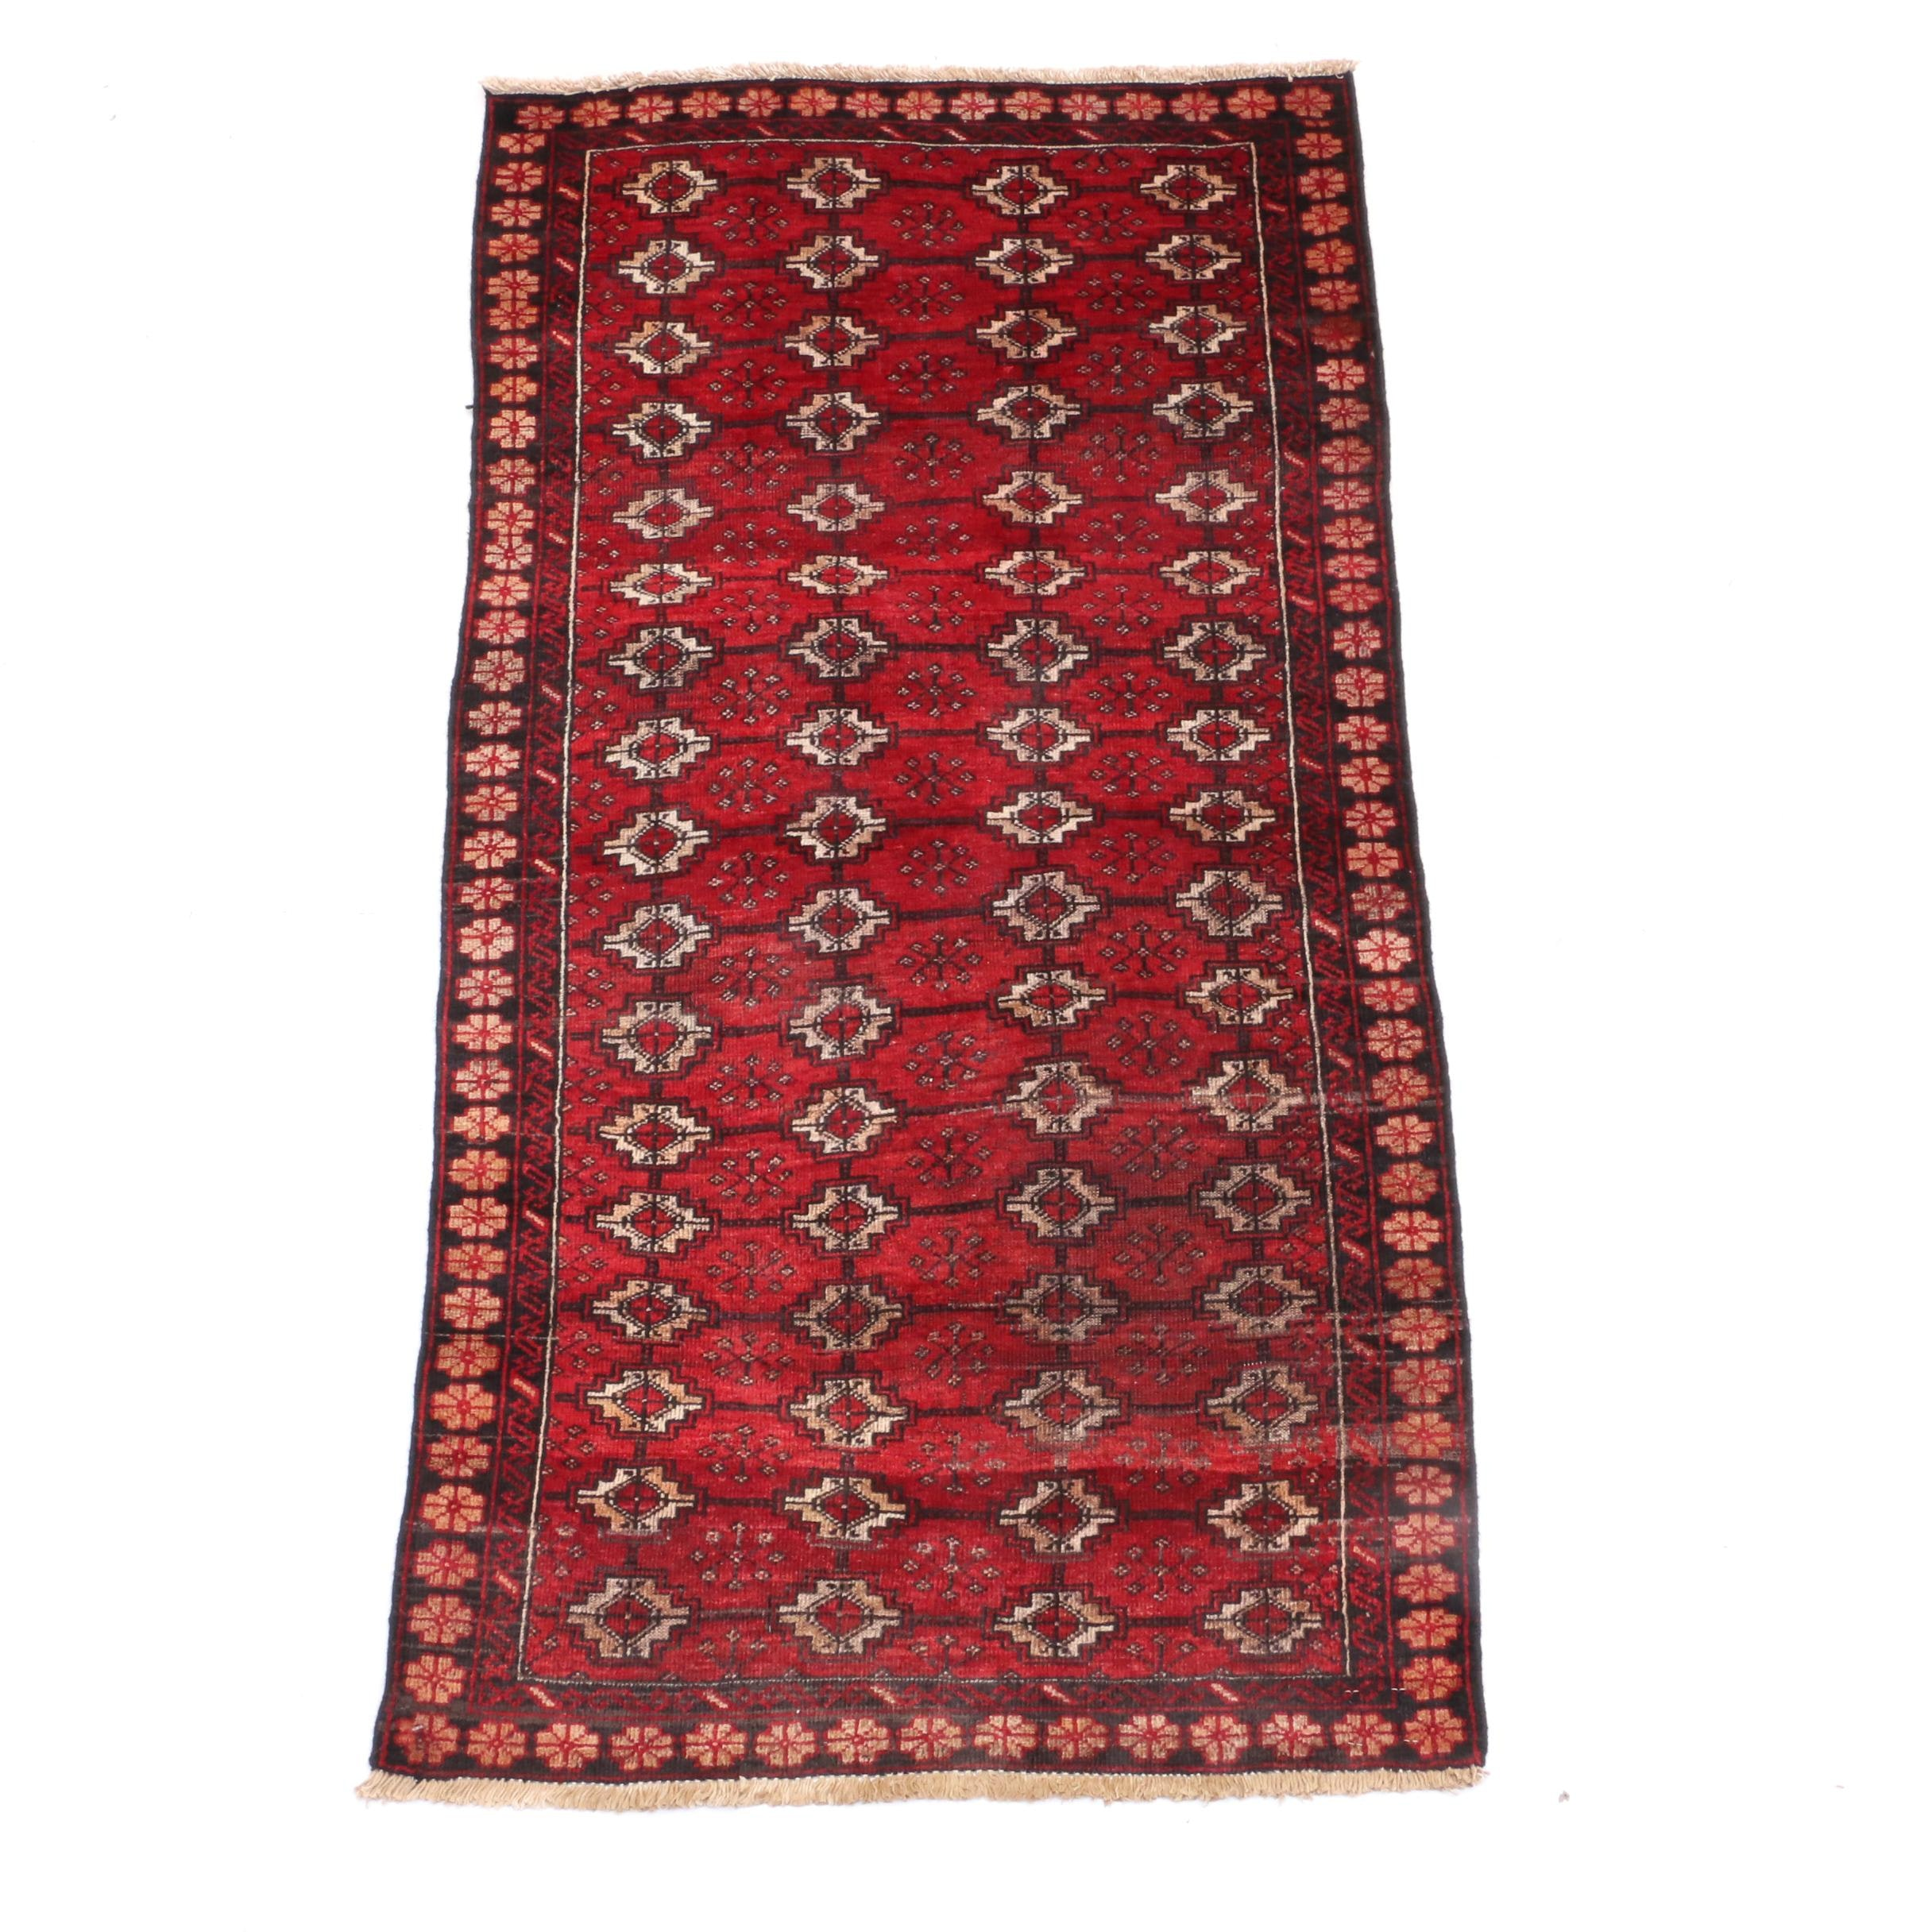 Vintage Hand-Knotted Persian Bokhara Wool Long Rug